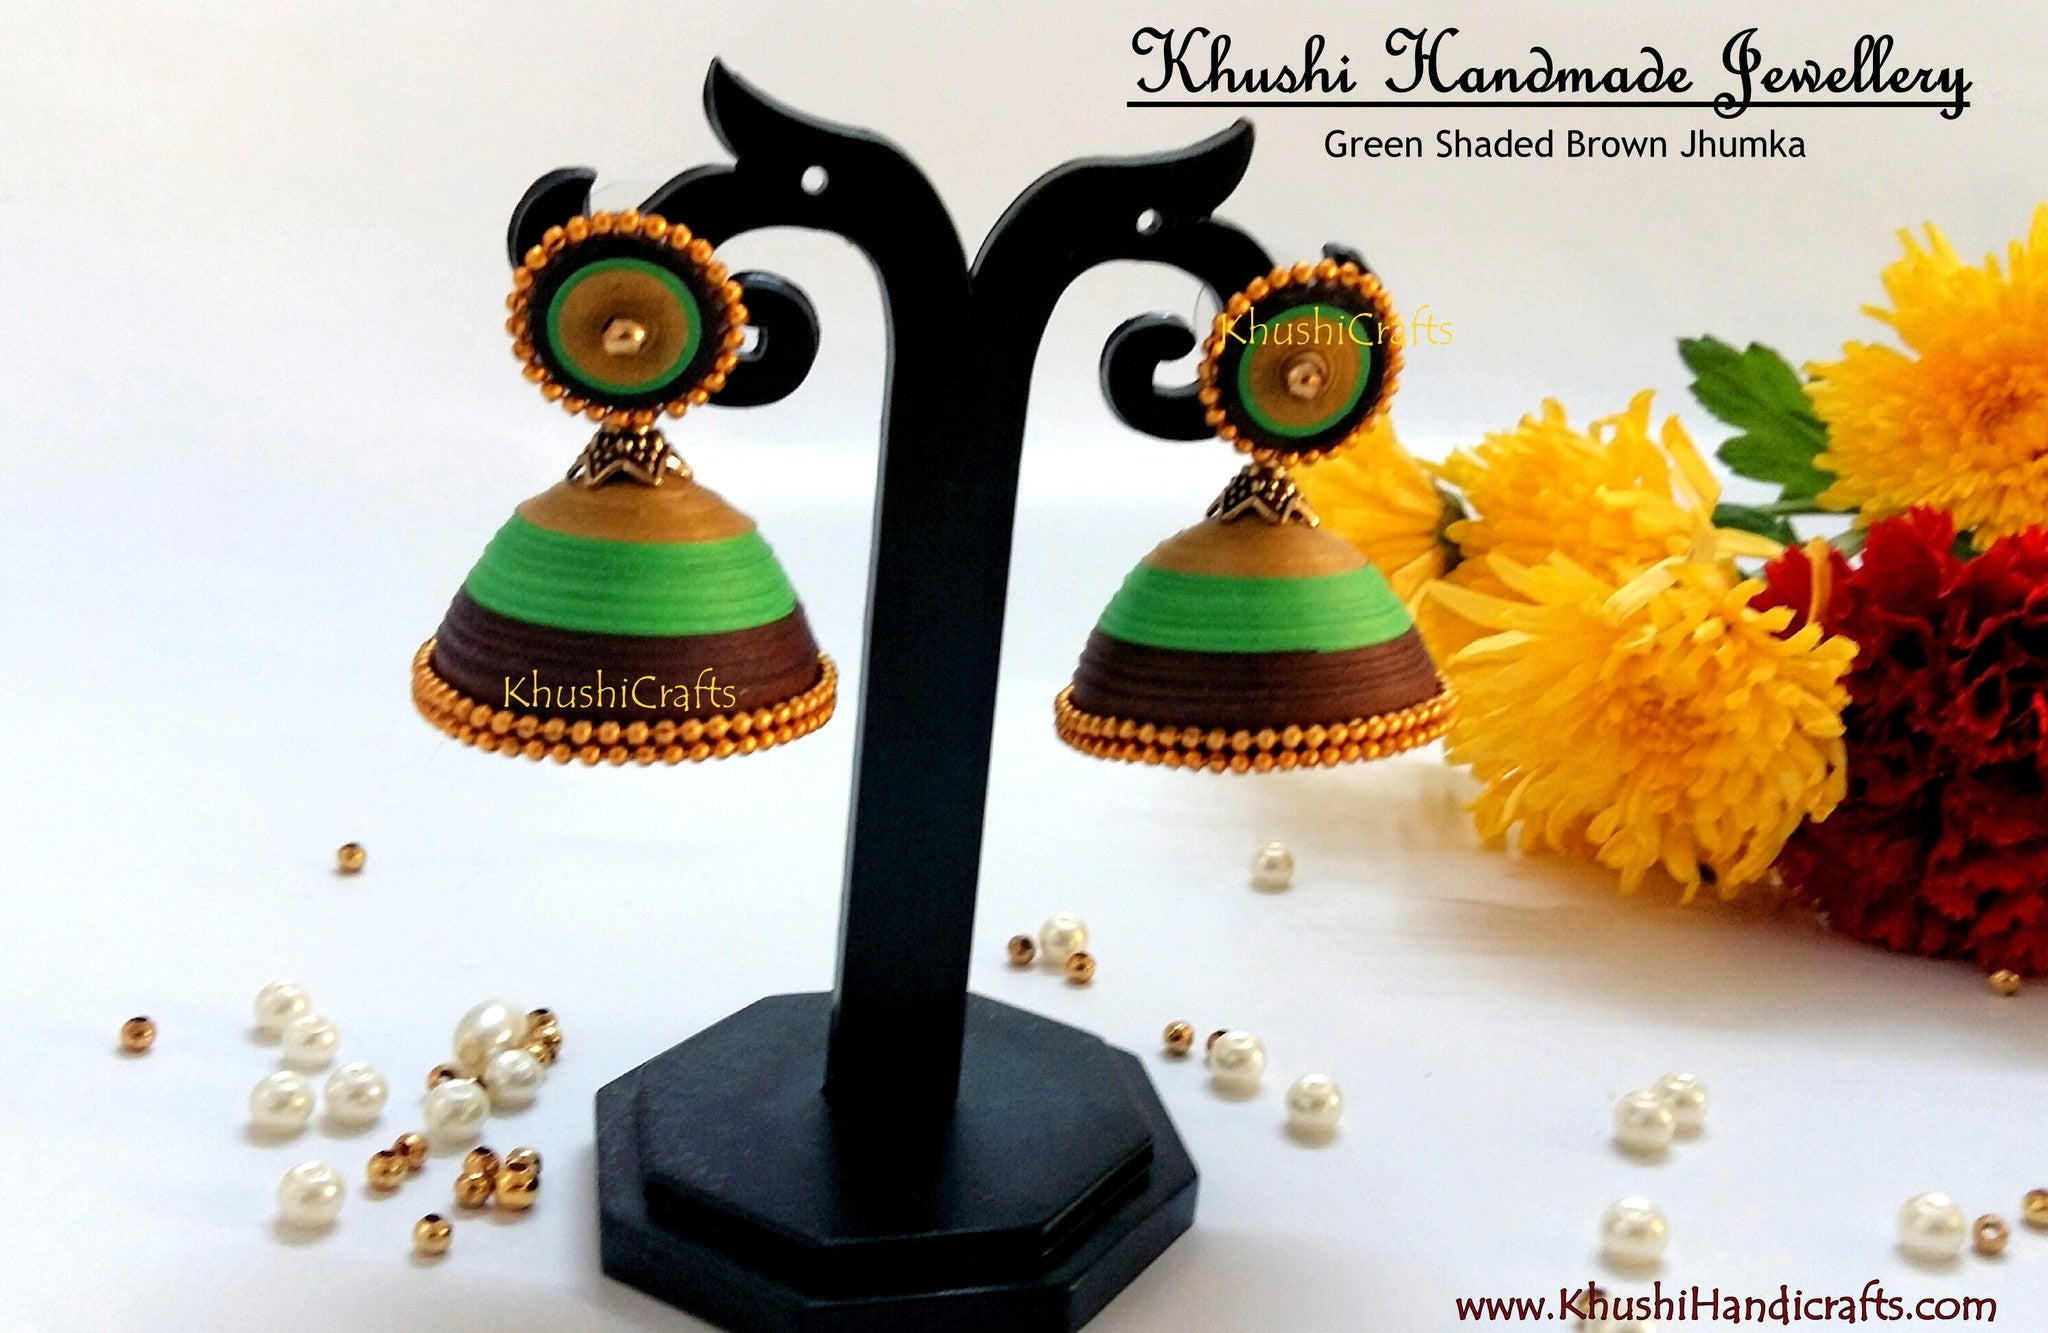 Green Shaded Brown Jhumka - Khushi Handmade Jewellery